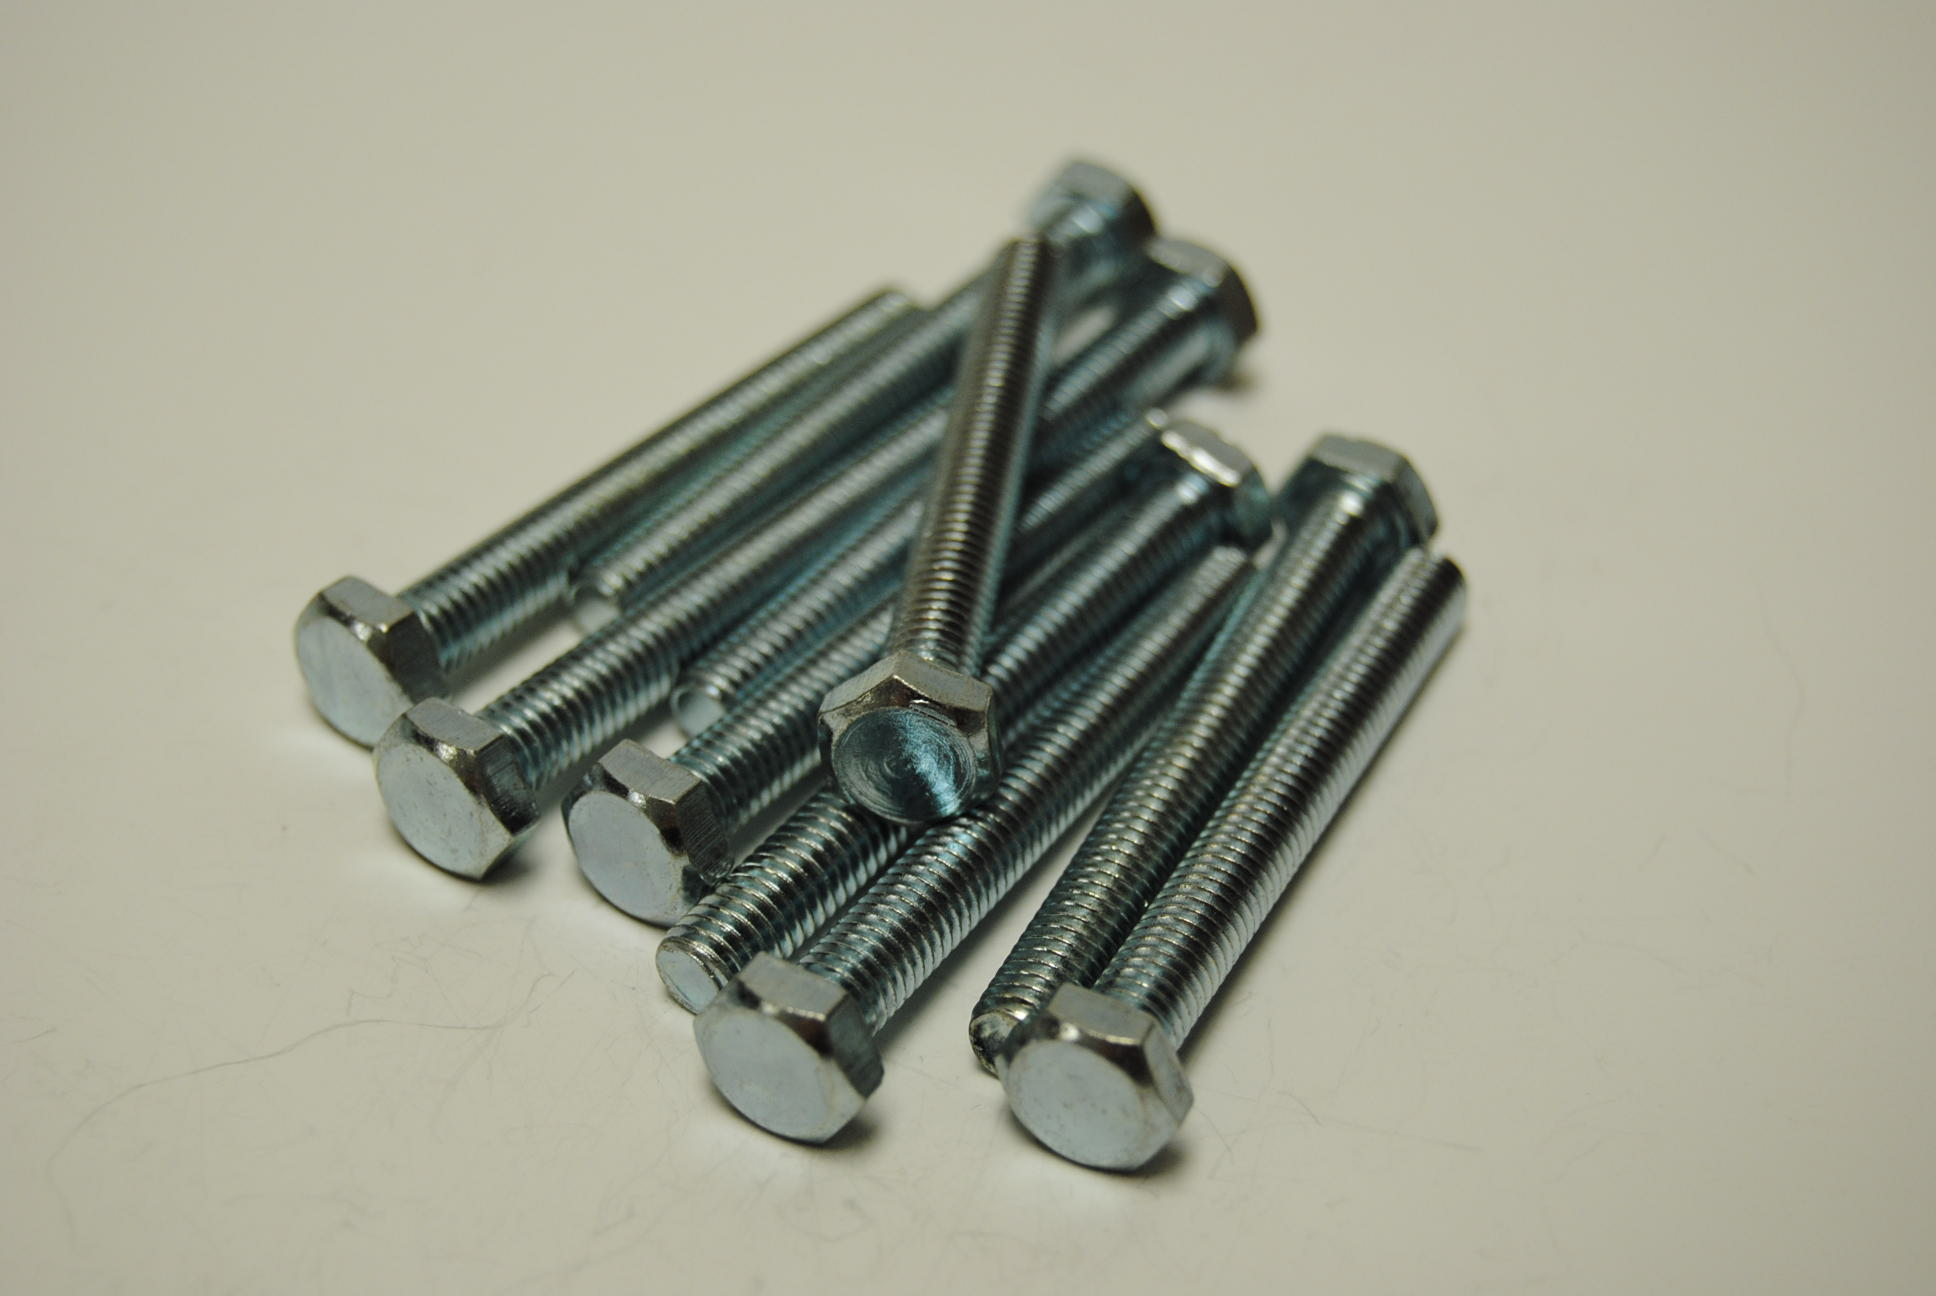 6mm x 50mm Hex Head Bolts - ISO